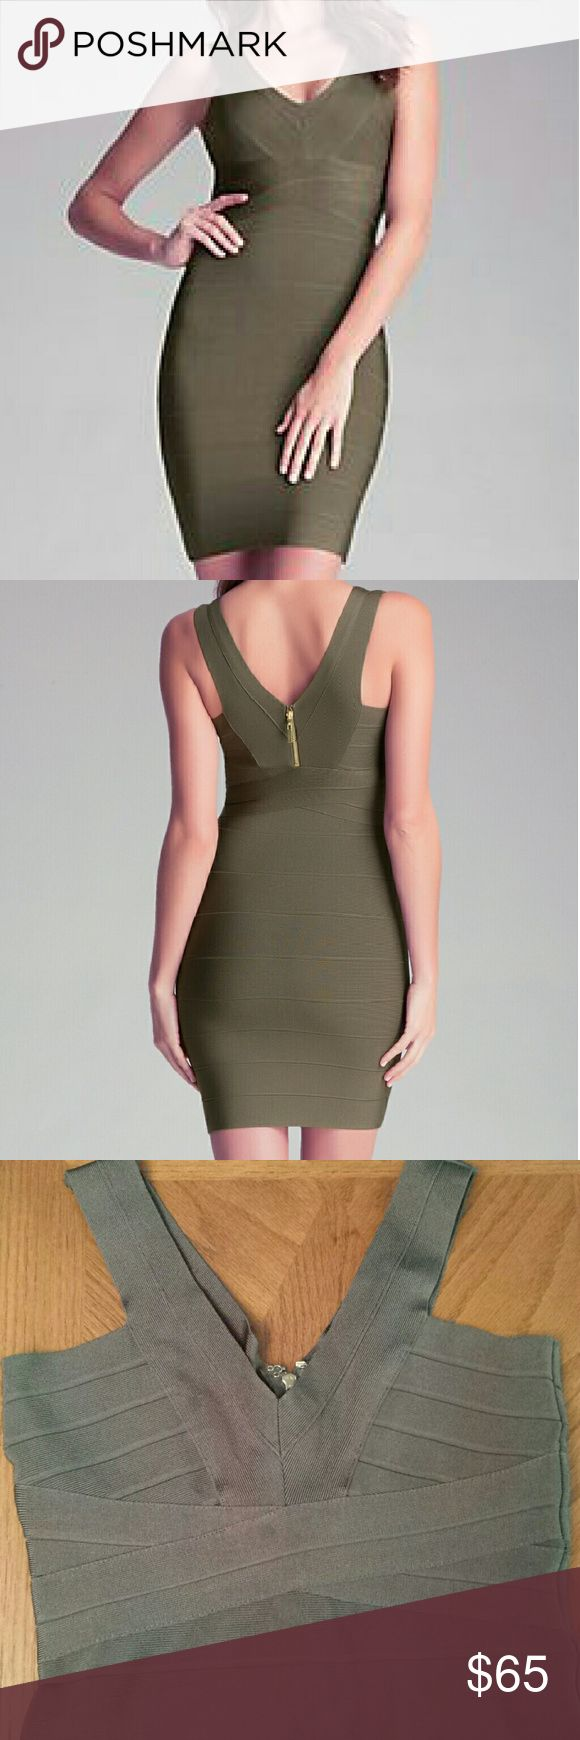 Bebe army green bandage dress V neck bandage dress in army green.  Excellent condition,  only worn once. 80% rayon 20% spandex Color shows poorly,  but is truer to stock photos. bebe Dresses